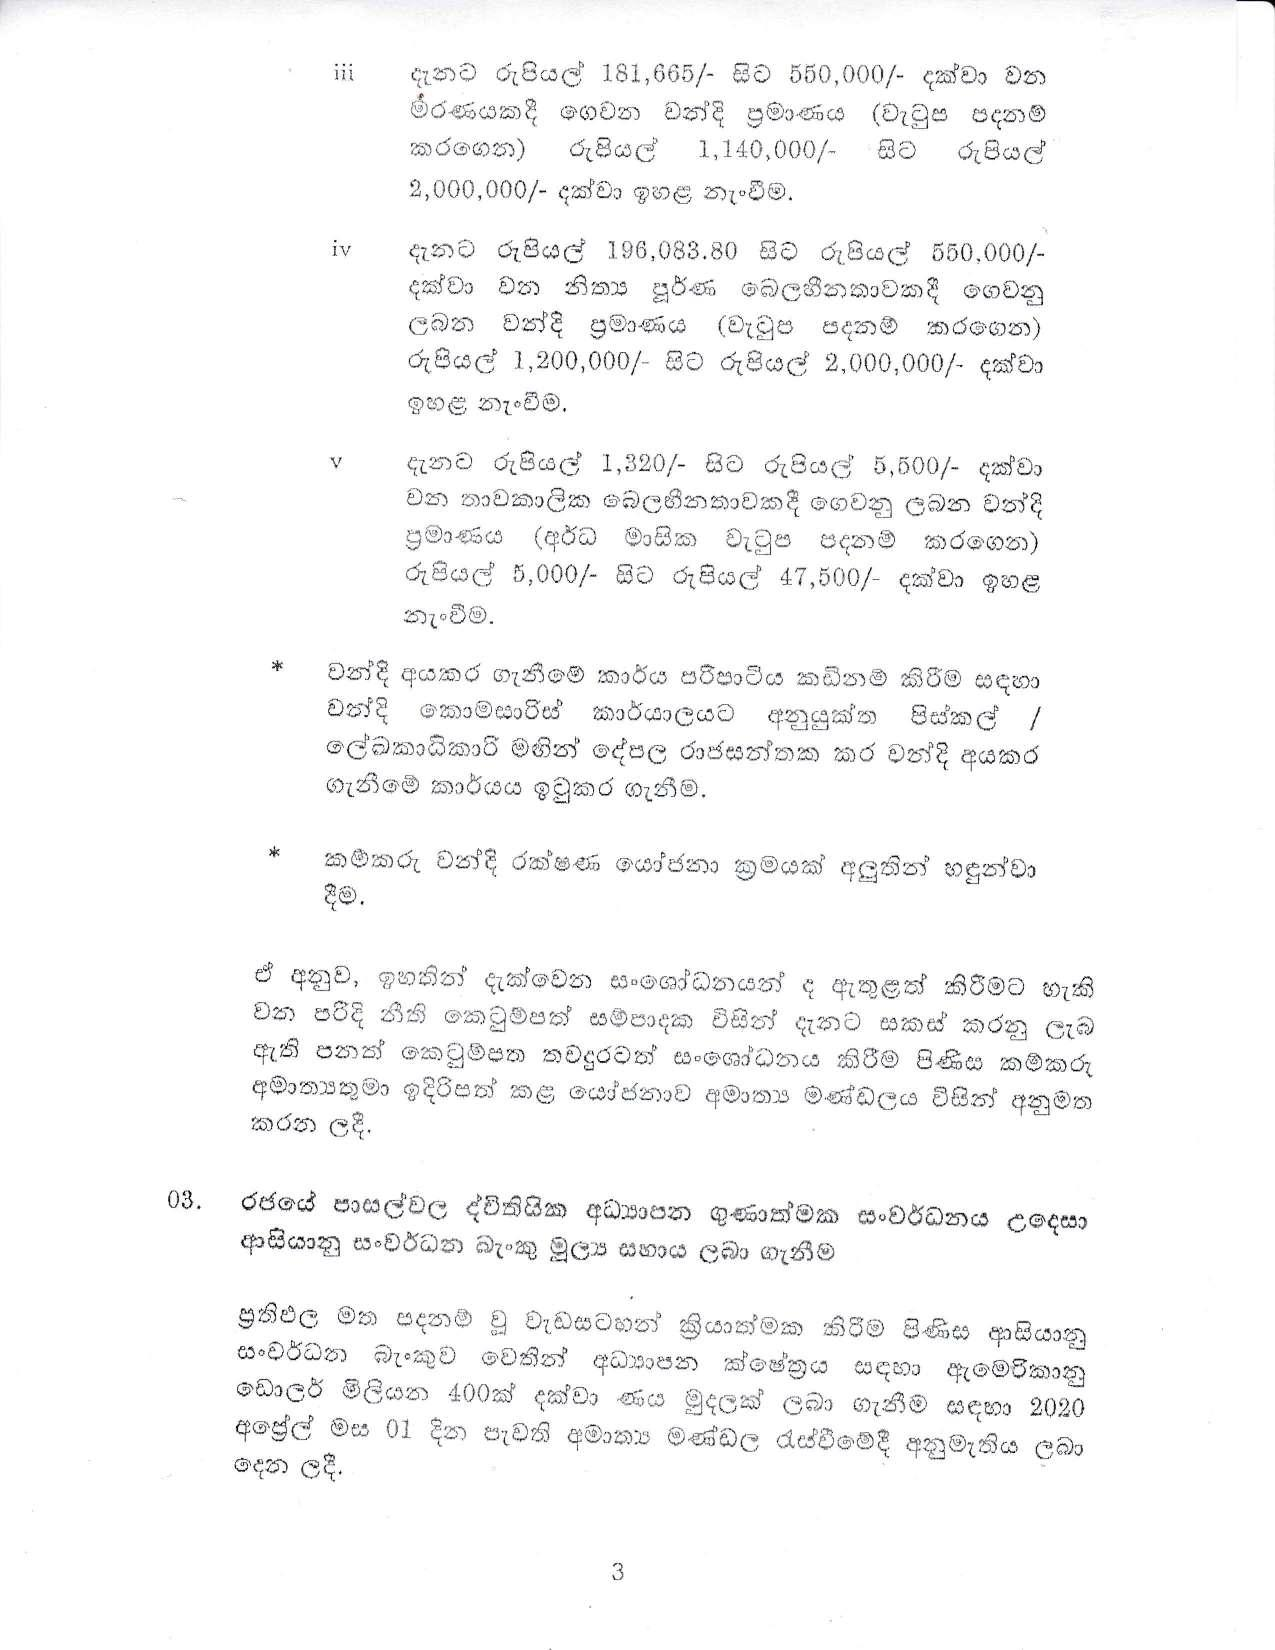 Cabinet Decision on 05.10.2020 compressed page 003